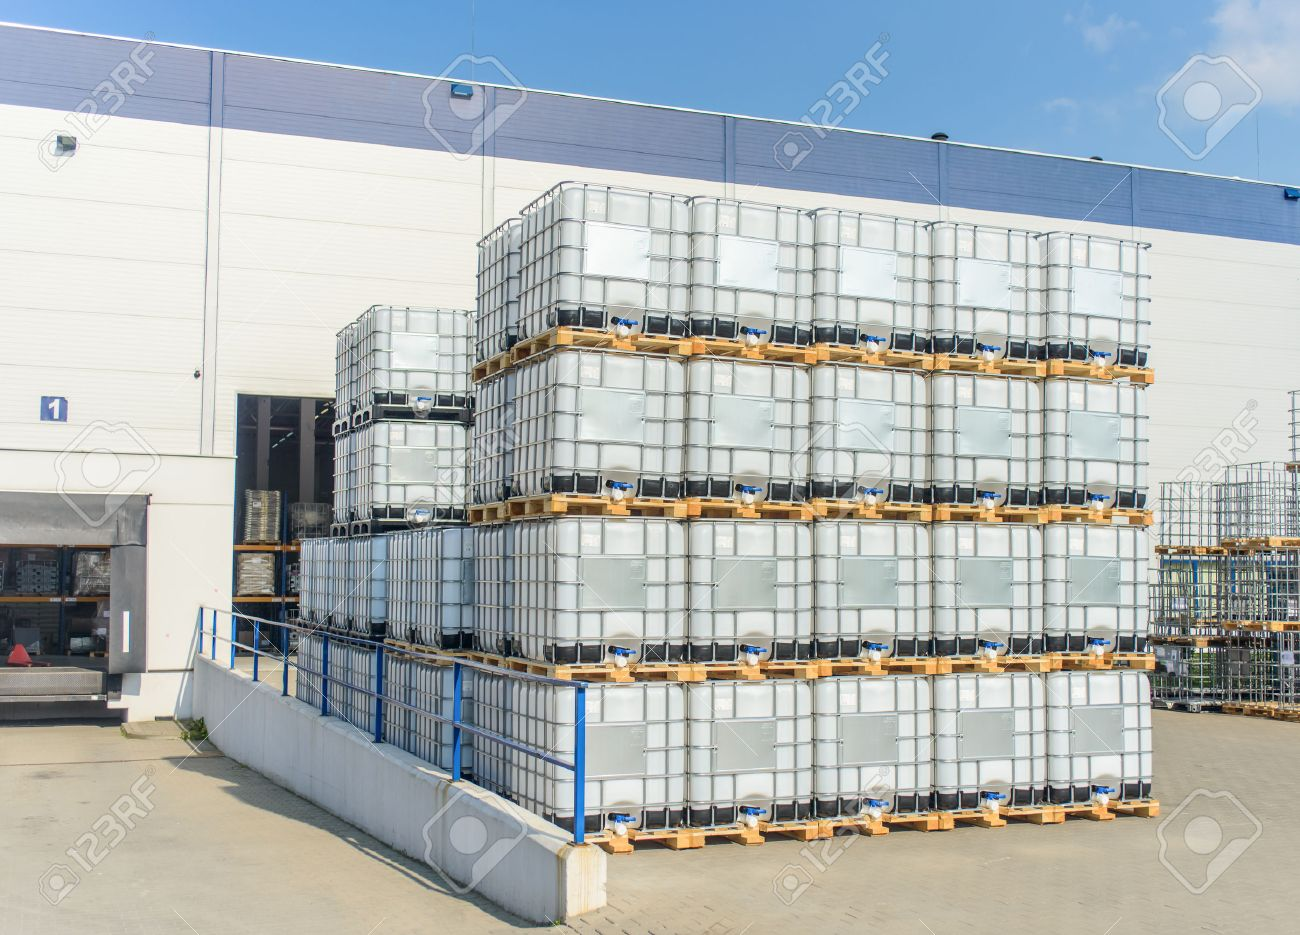 Packed Pallets Ibc Container Of Retail Goods Standing Outdoors